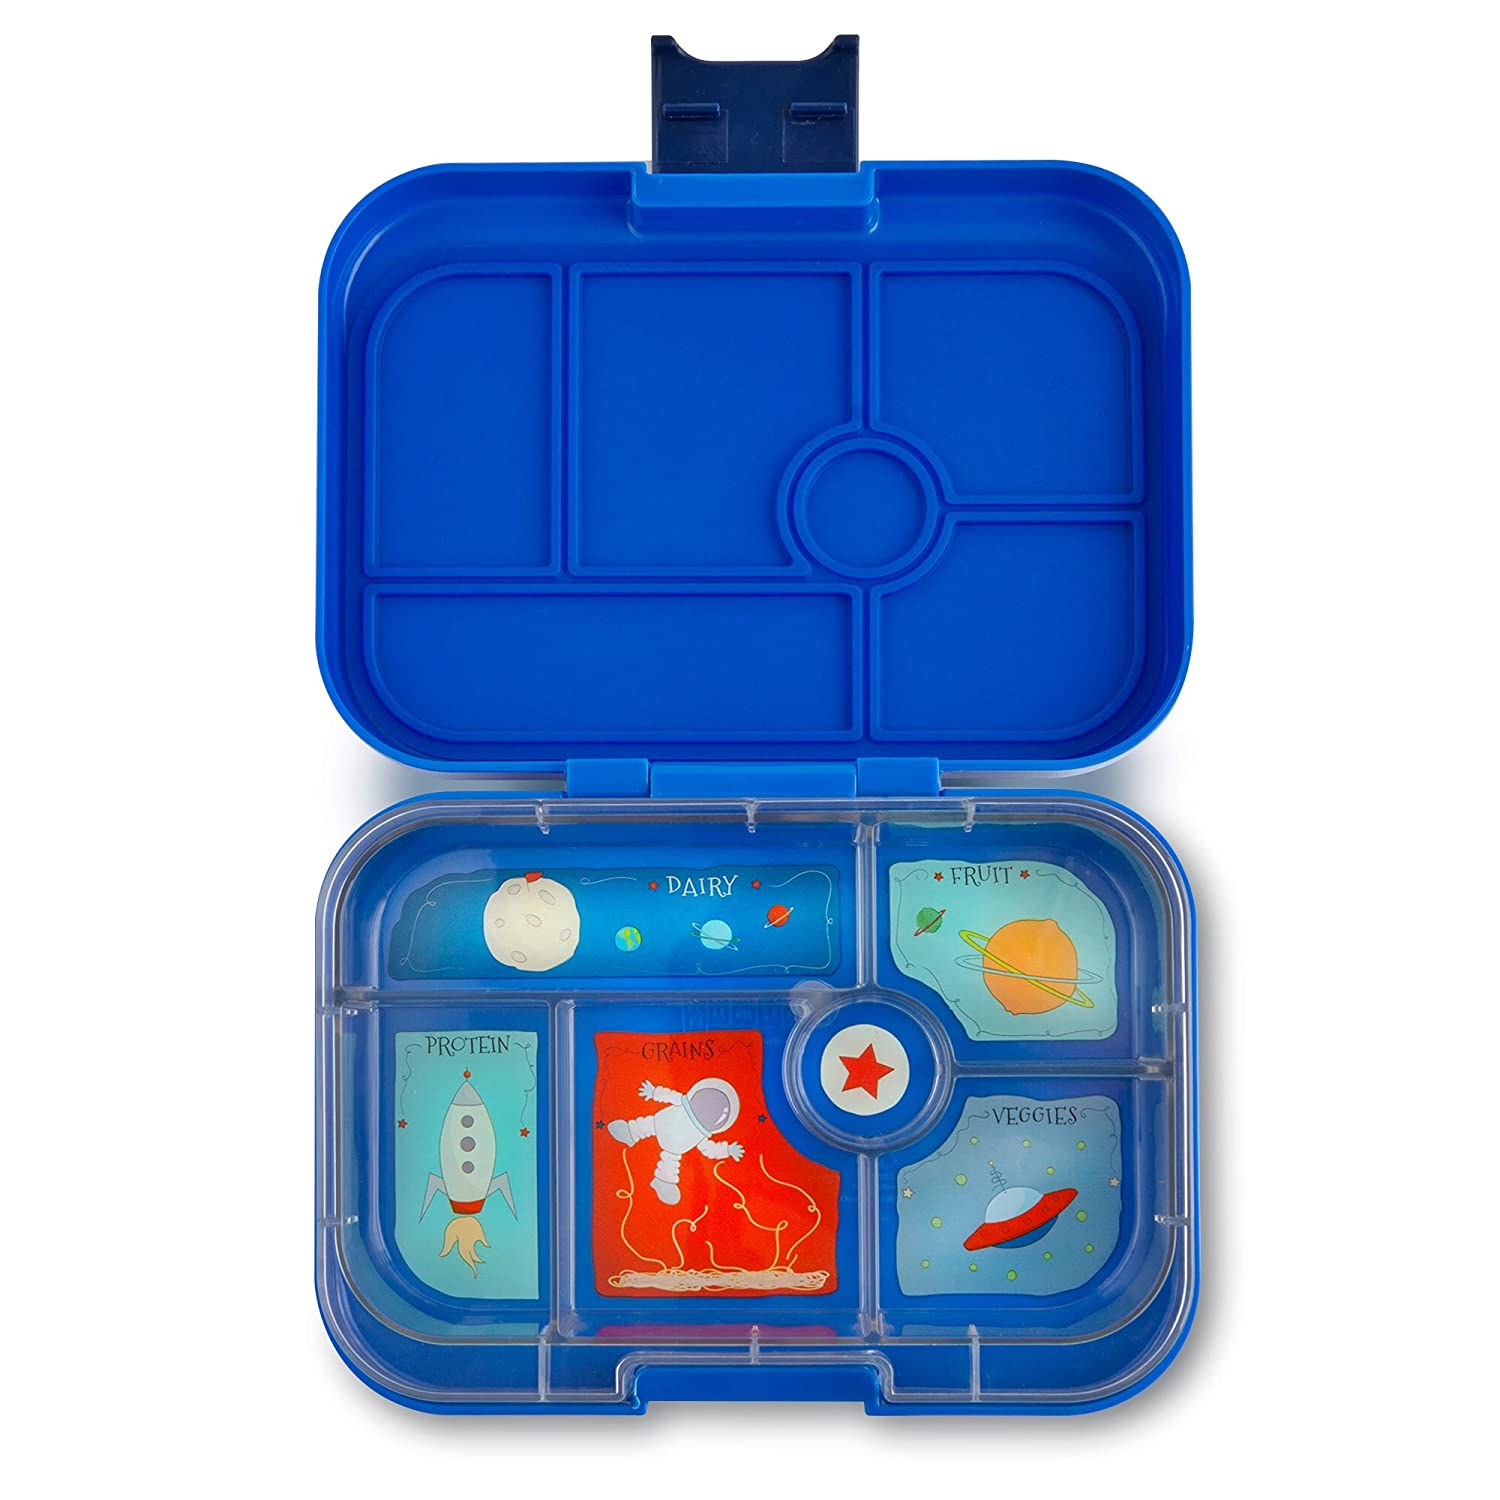 YUMBOX (Neptune Blue) Leakproof Bento Lunch Box Container for Kids: Bento-style lunch box offers Durable, Leak-proof, On-the-go Meal and Snack Packing